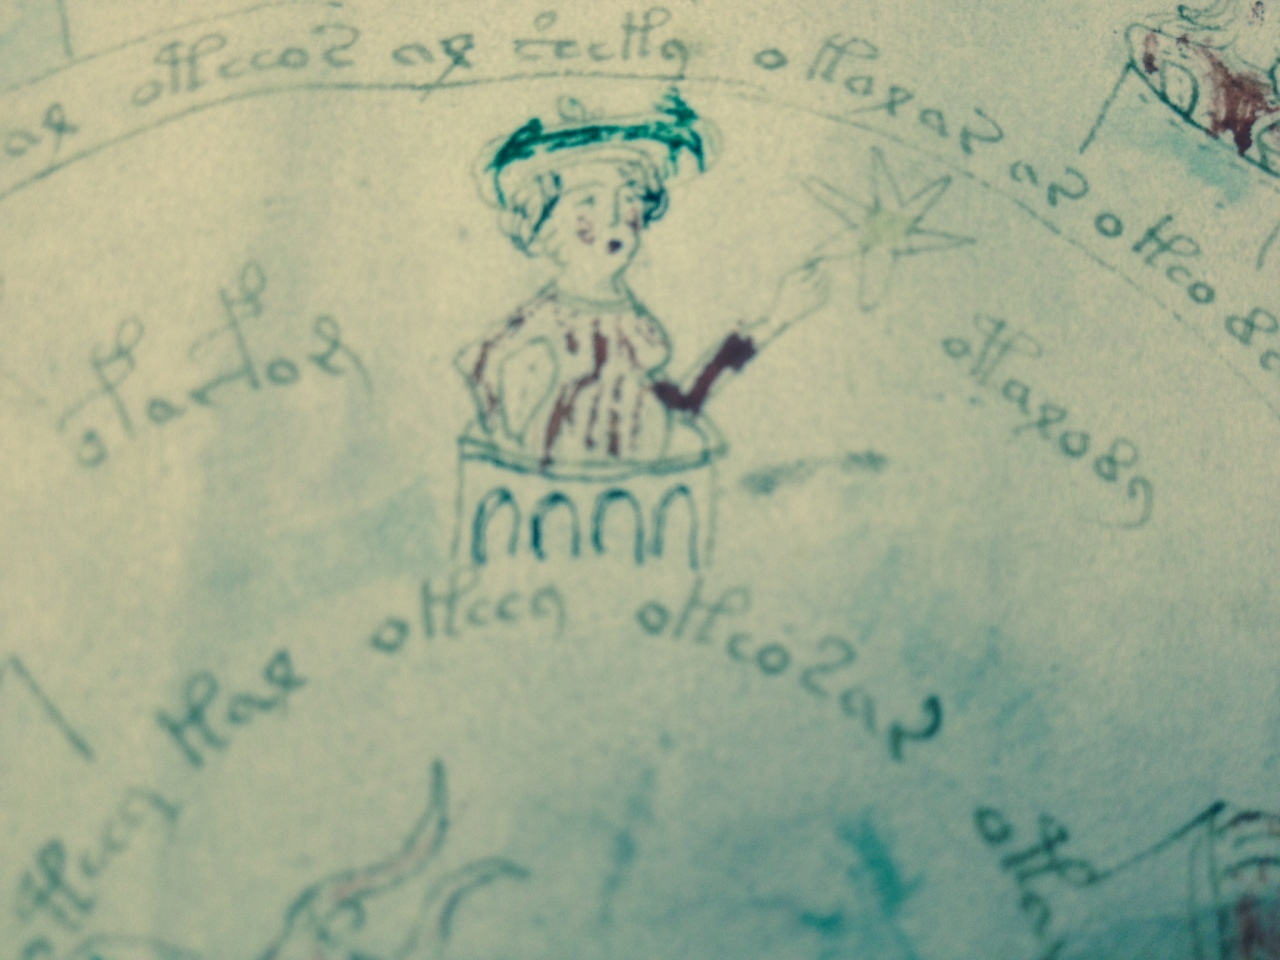 Crowned woman figure in the Voynich Manuscript photo by Hillary Raimo Yale University 11/19/13